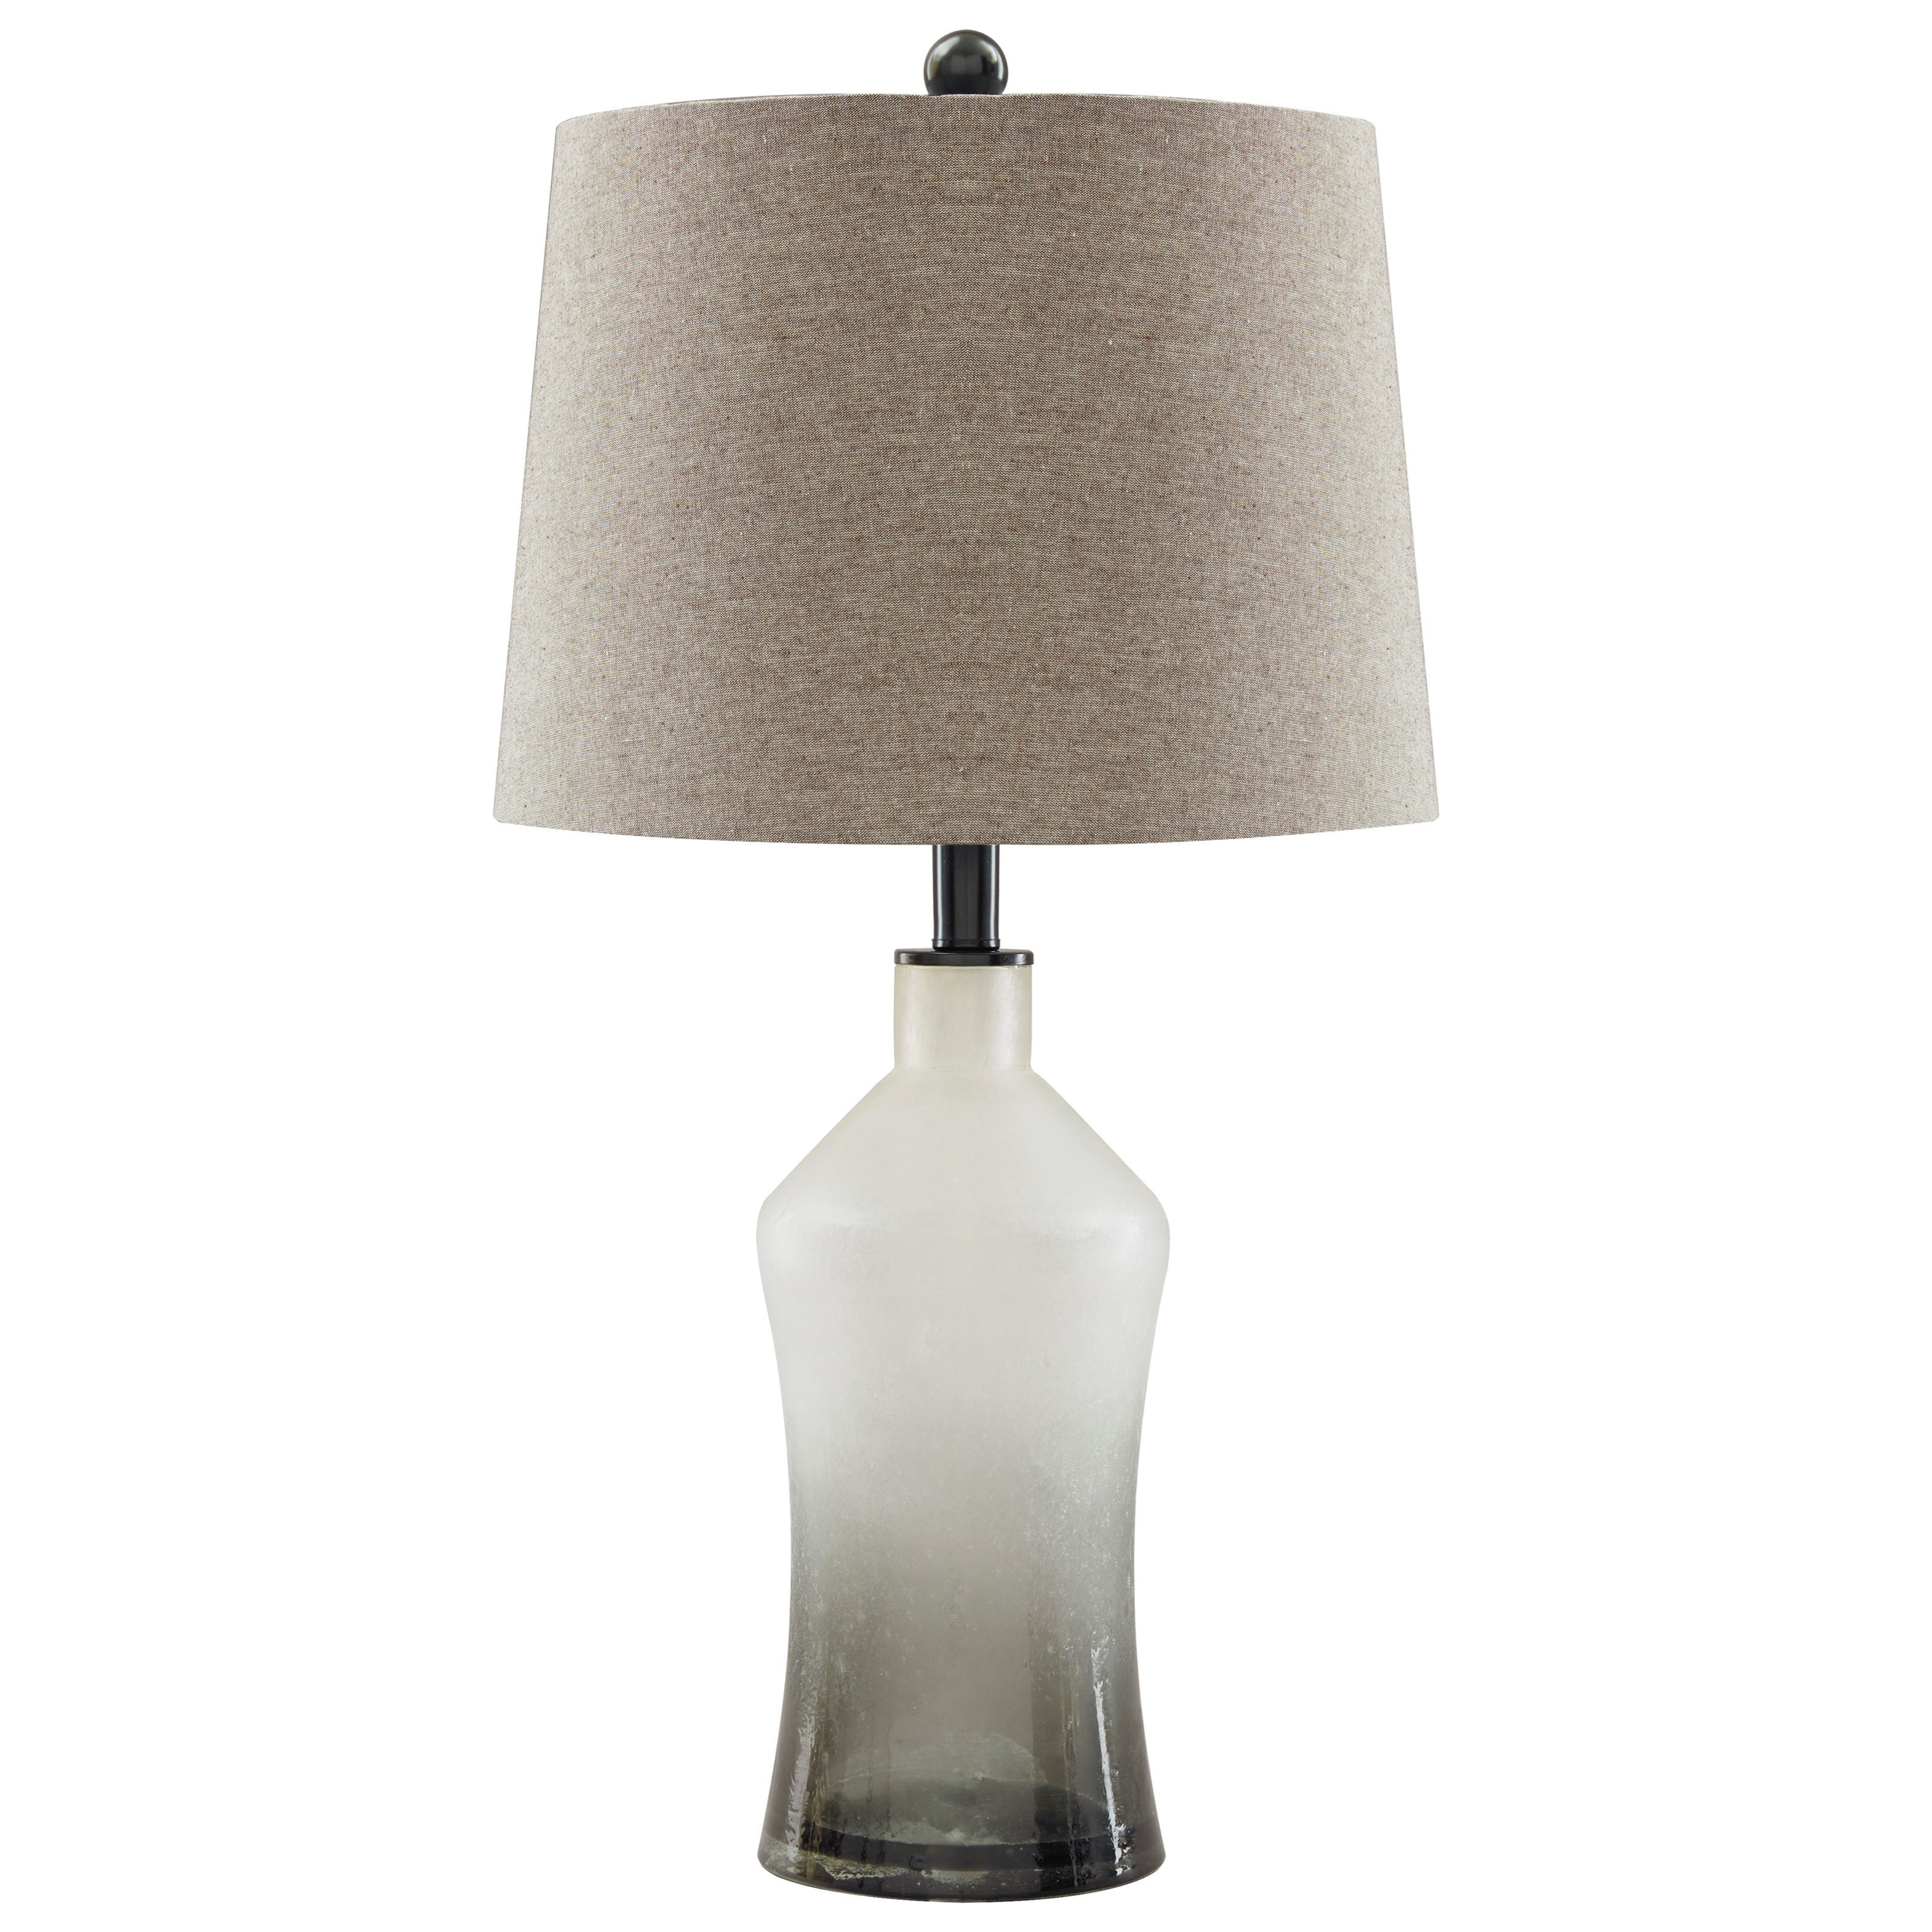 Signature Design By Ashley Lamps   Vintage StyleSet Of 2 Nollie Gray Glass  Table Lamps ...